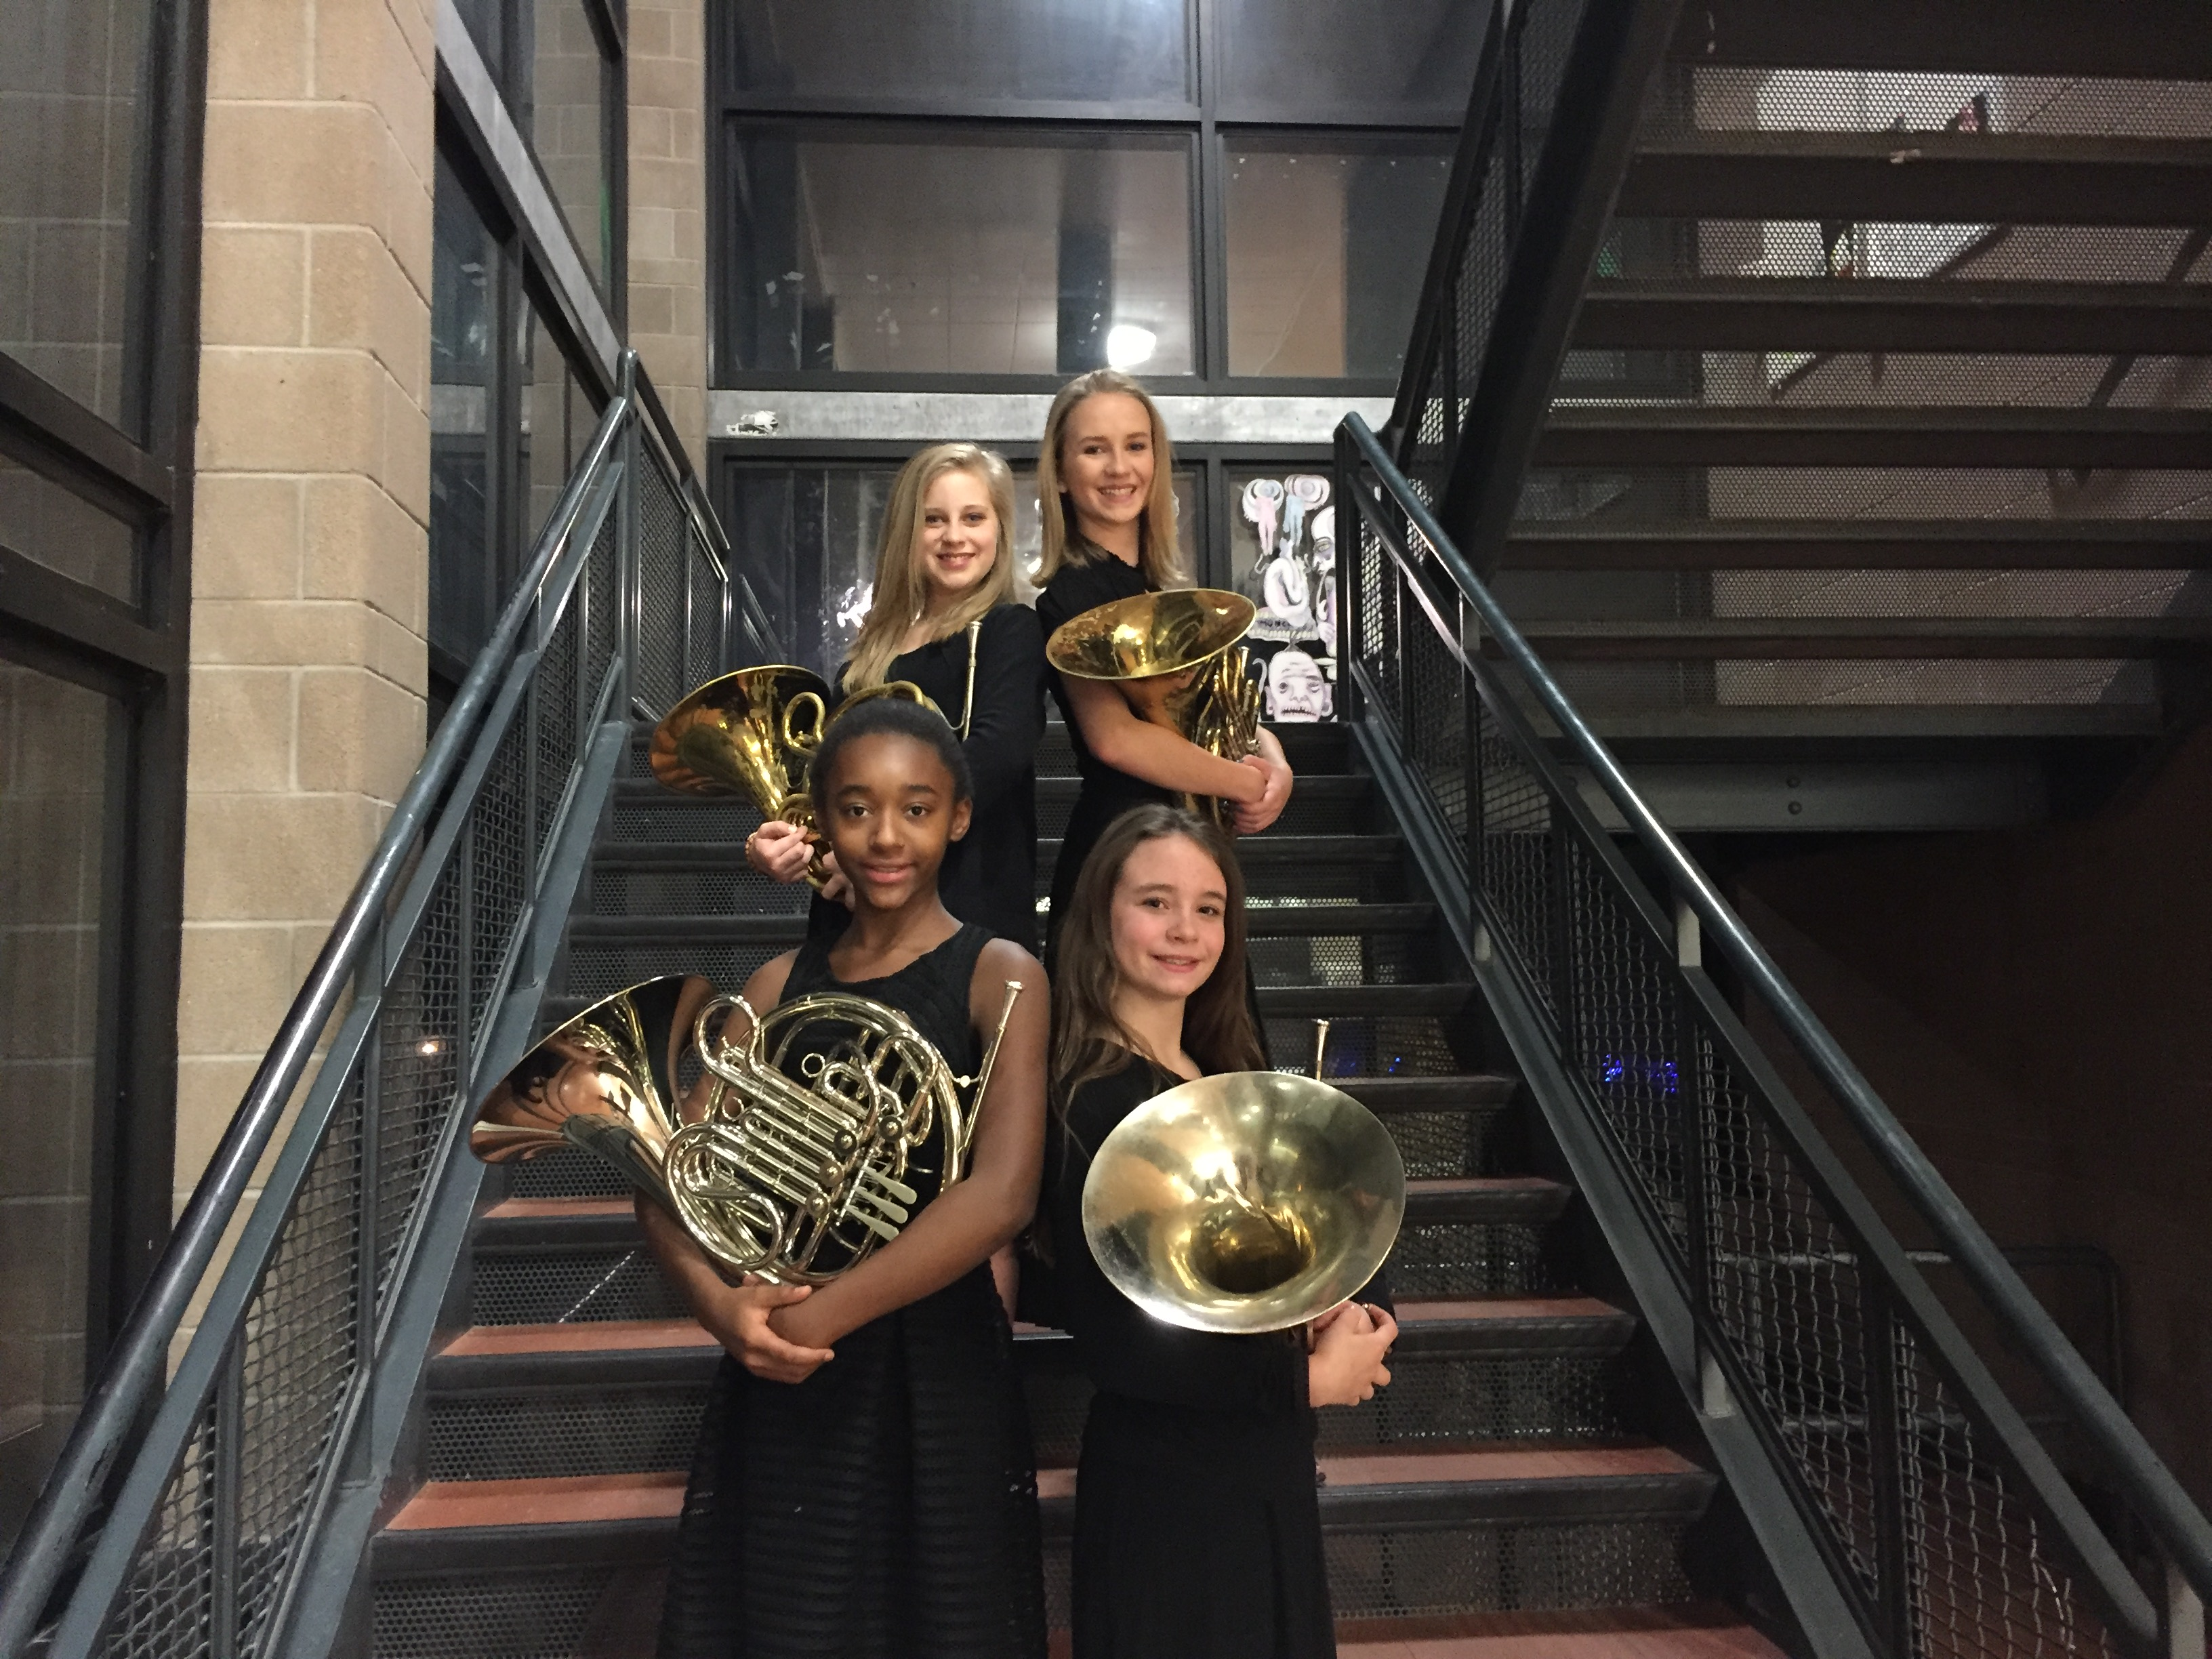 The French Horn section of the DSA Concert Band before the Winter Show dress to impress and then played a beautiful concert.